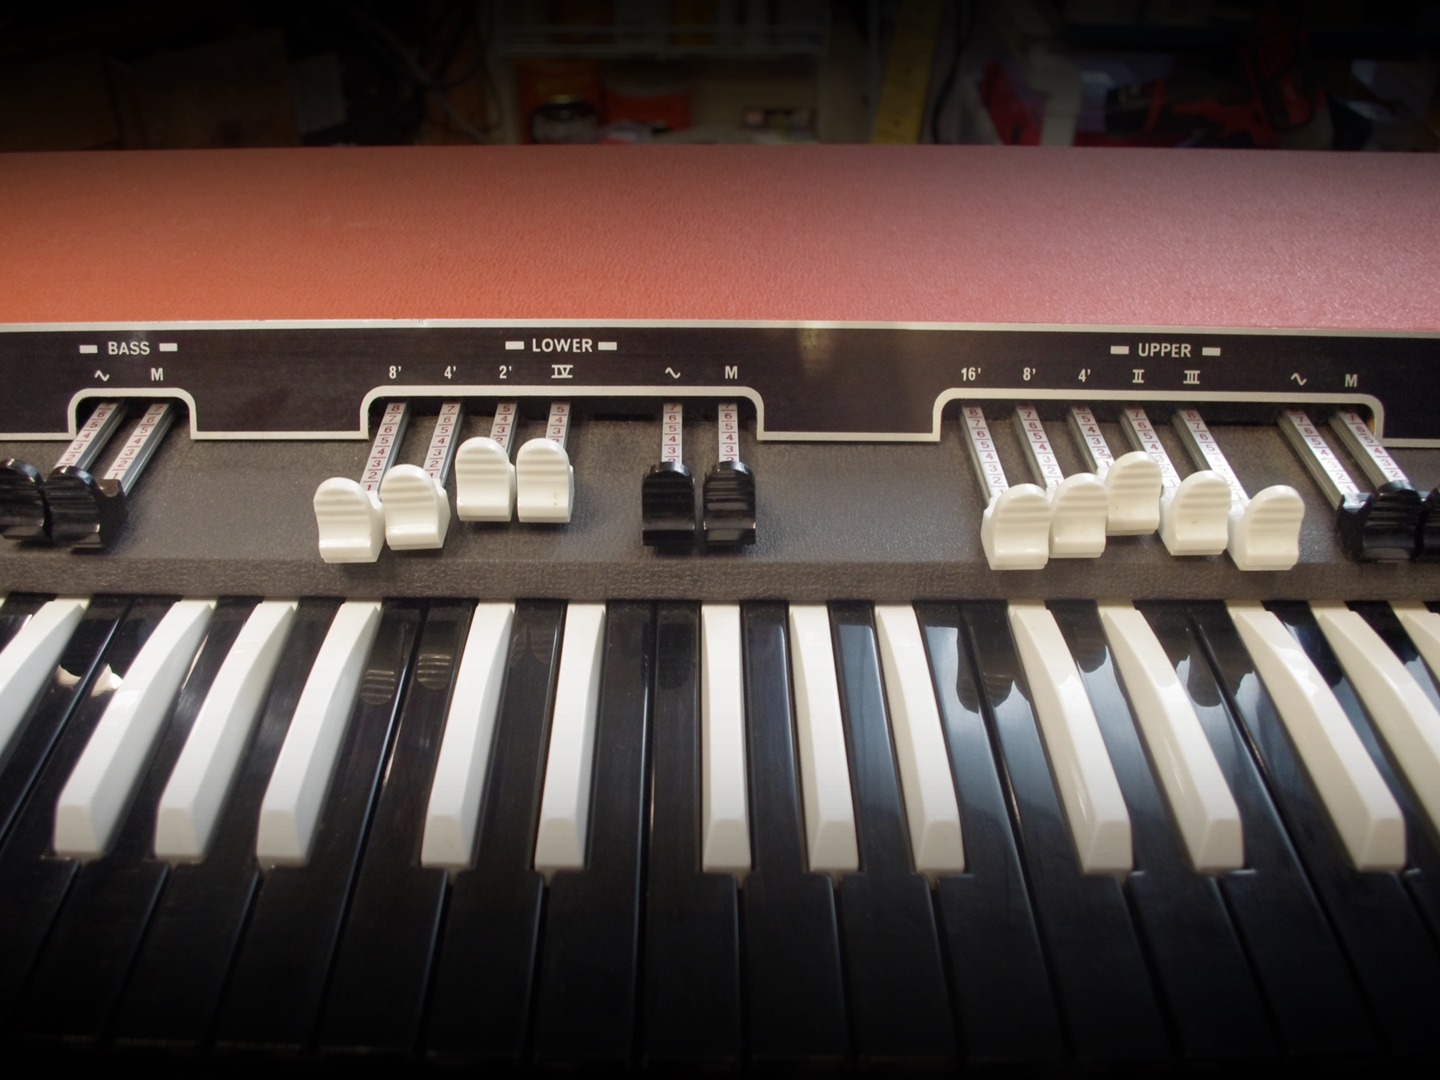 Vox Super Continental Organ drawbars